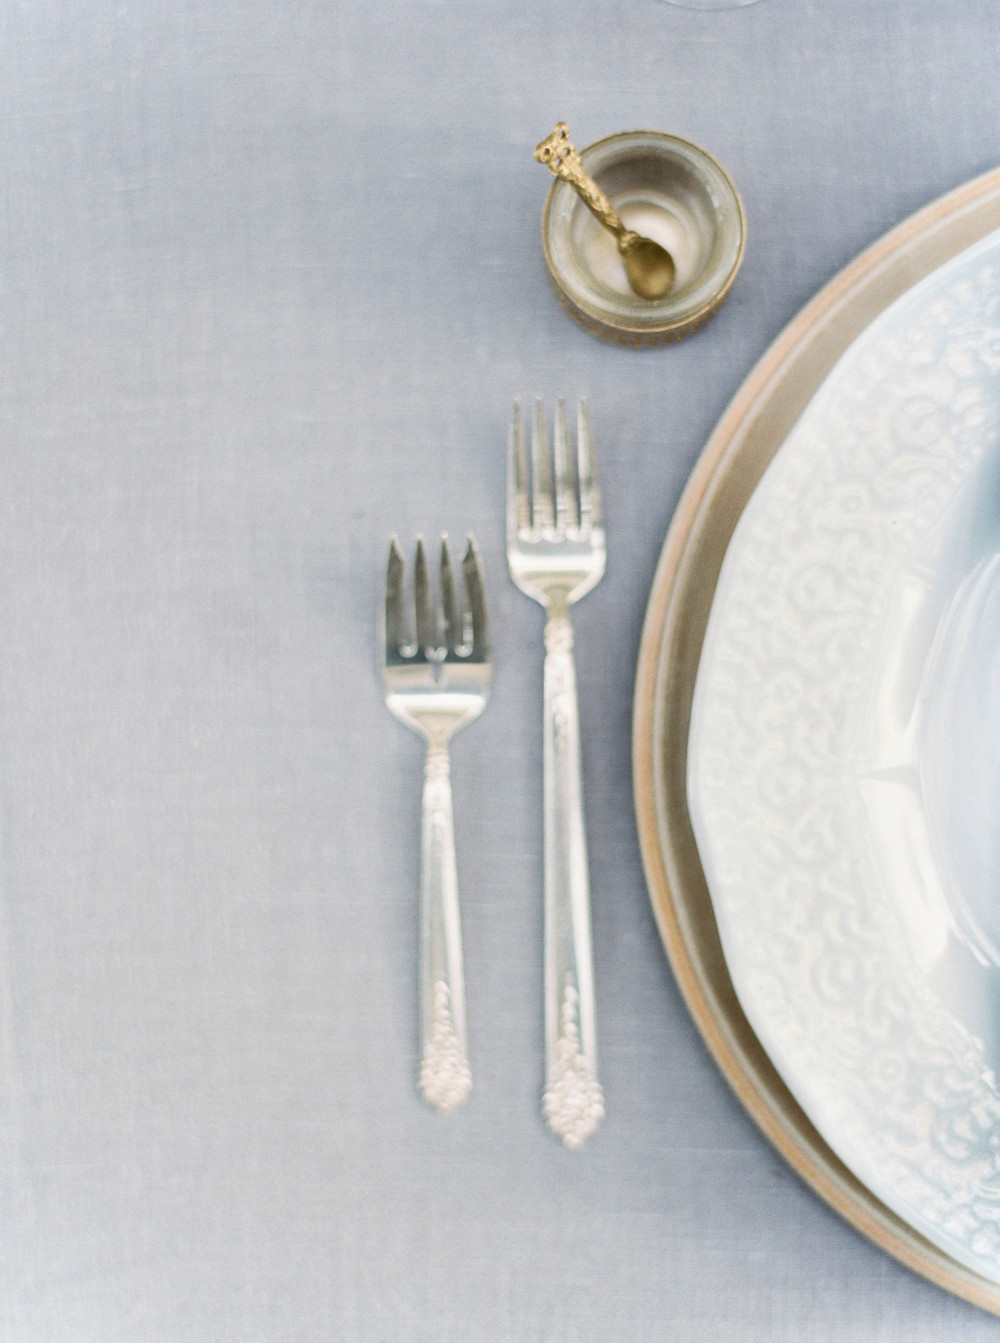 Vintage silverware-flatware-wedding reception-rustic weddings-place setting inspiration-